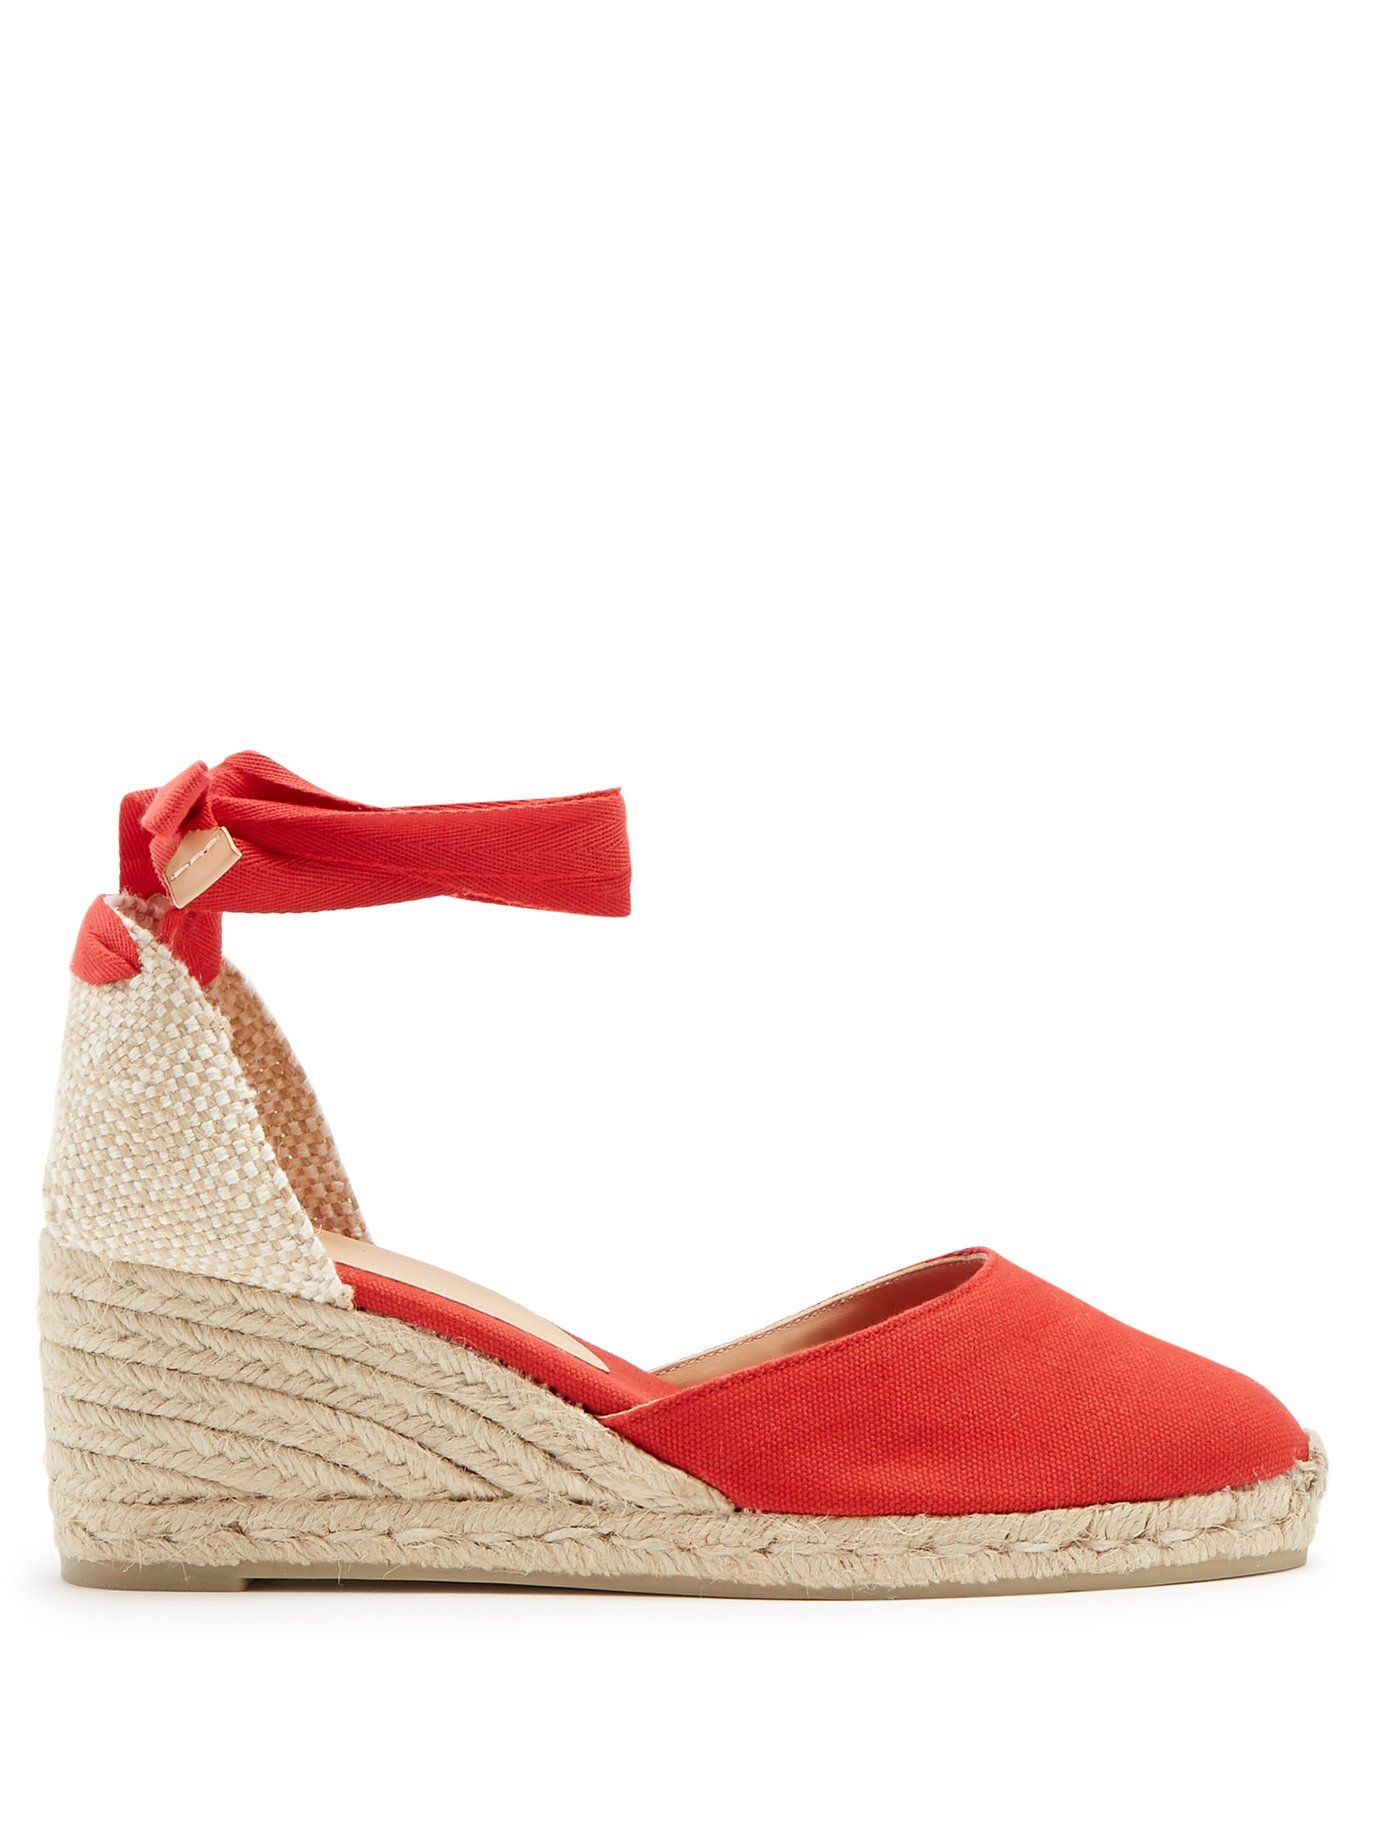 The best summer shoes - from sandals and flip flops to espadrilles and canvas trainers